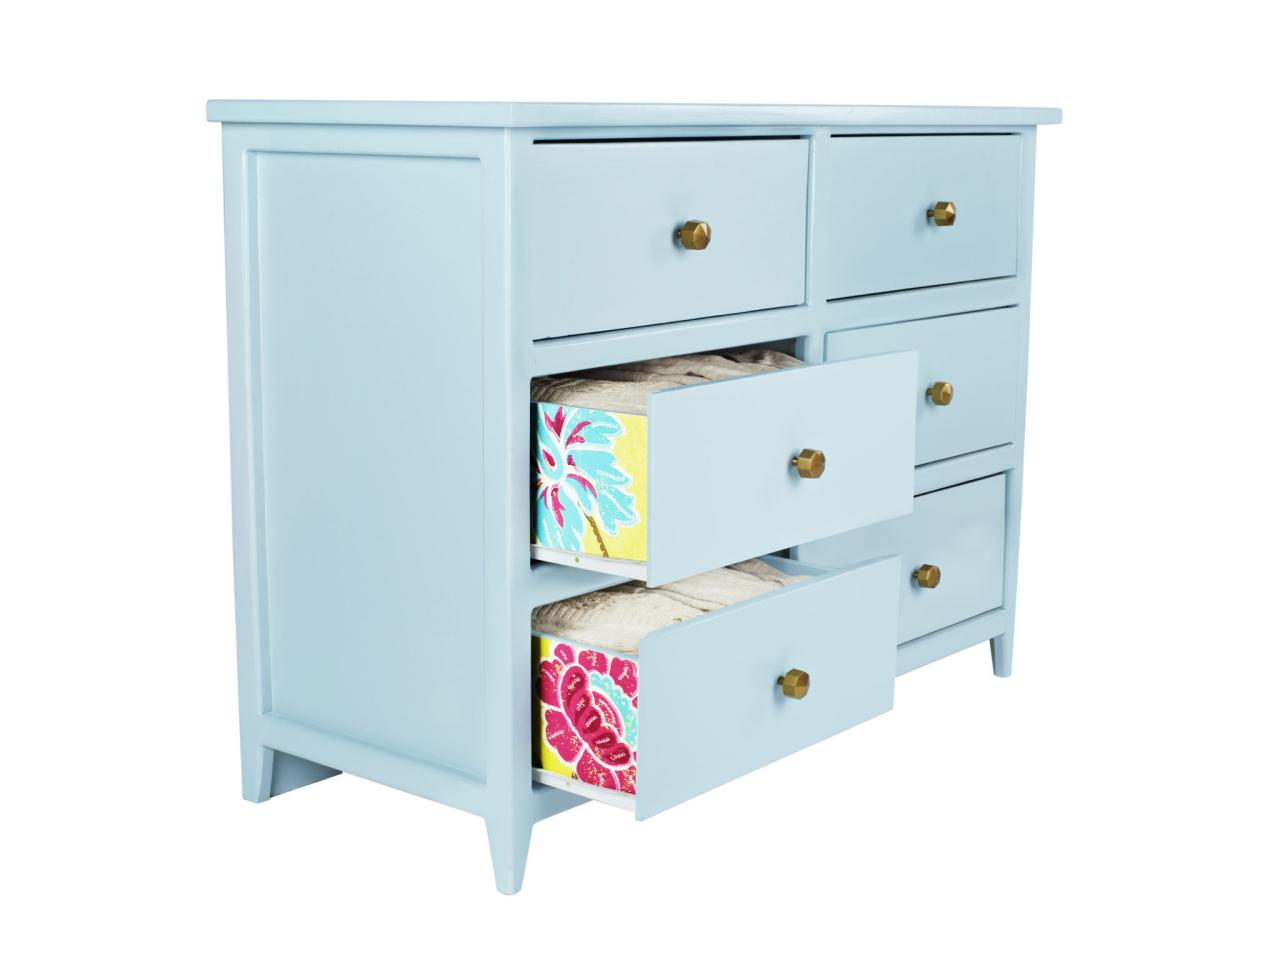 How To Wallpaper Interior Dresser Drawers Hgtv